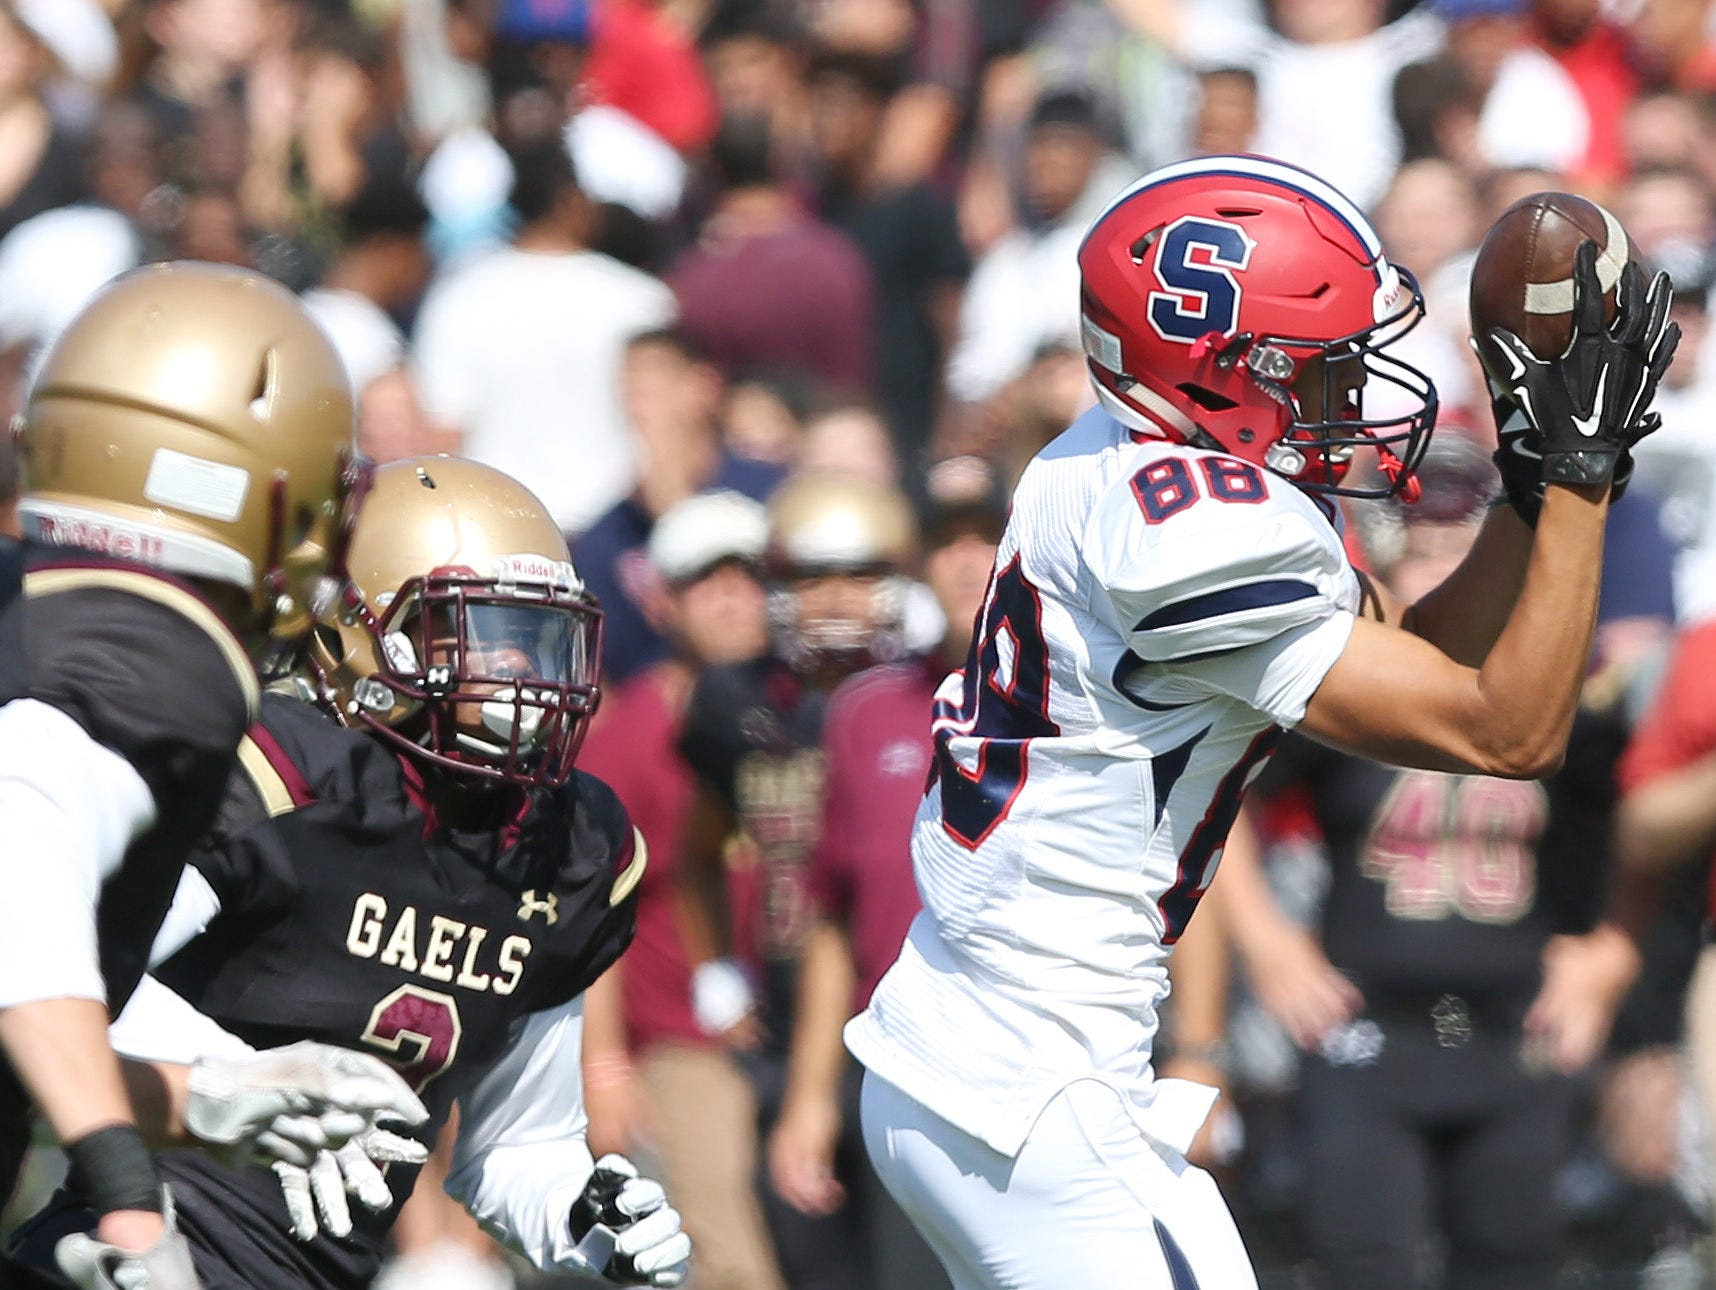 Stepinac's Brandon Gasparre (88) catches a pass over the middle against Iona during football action at Iona Prep in New Rochelle Sept. 17, 2016. Stepinac won the game 42-34.